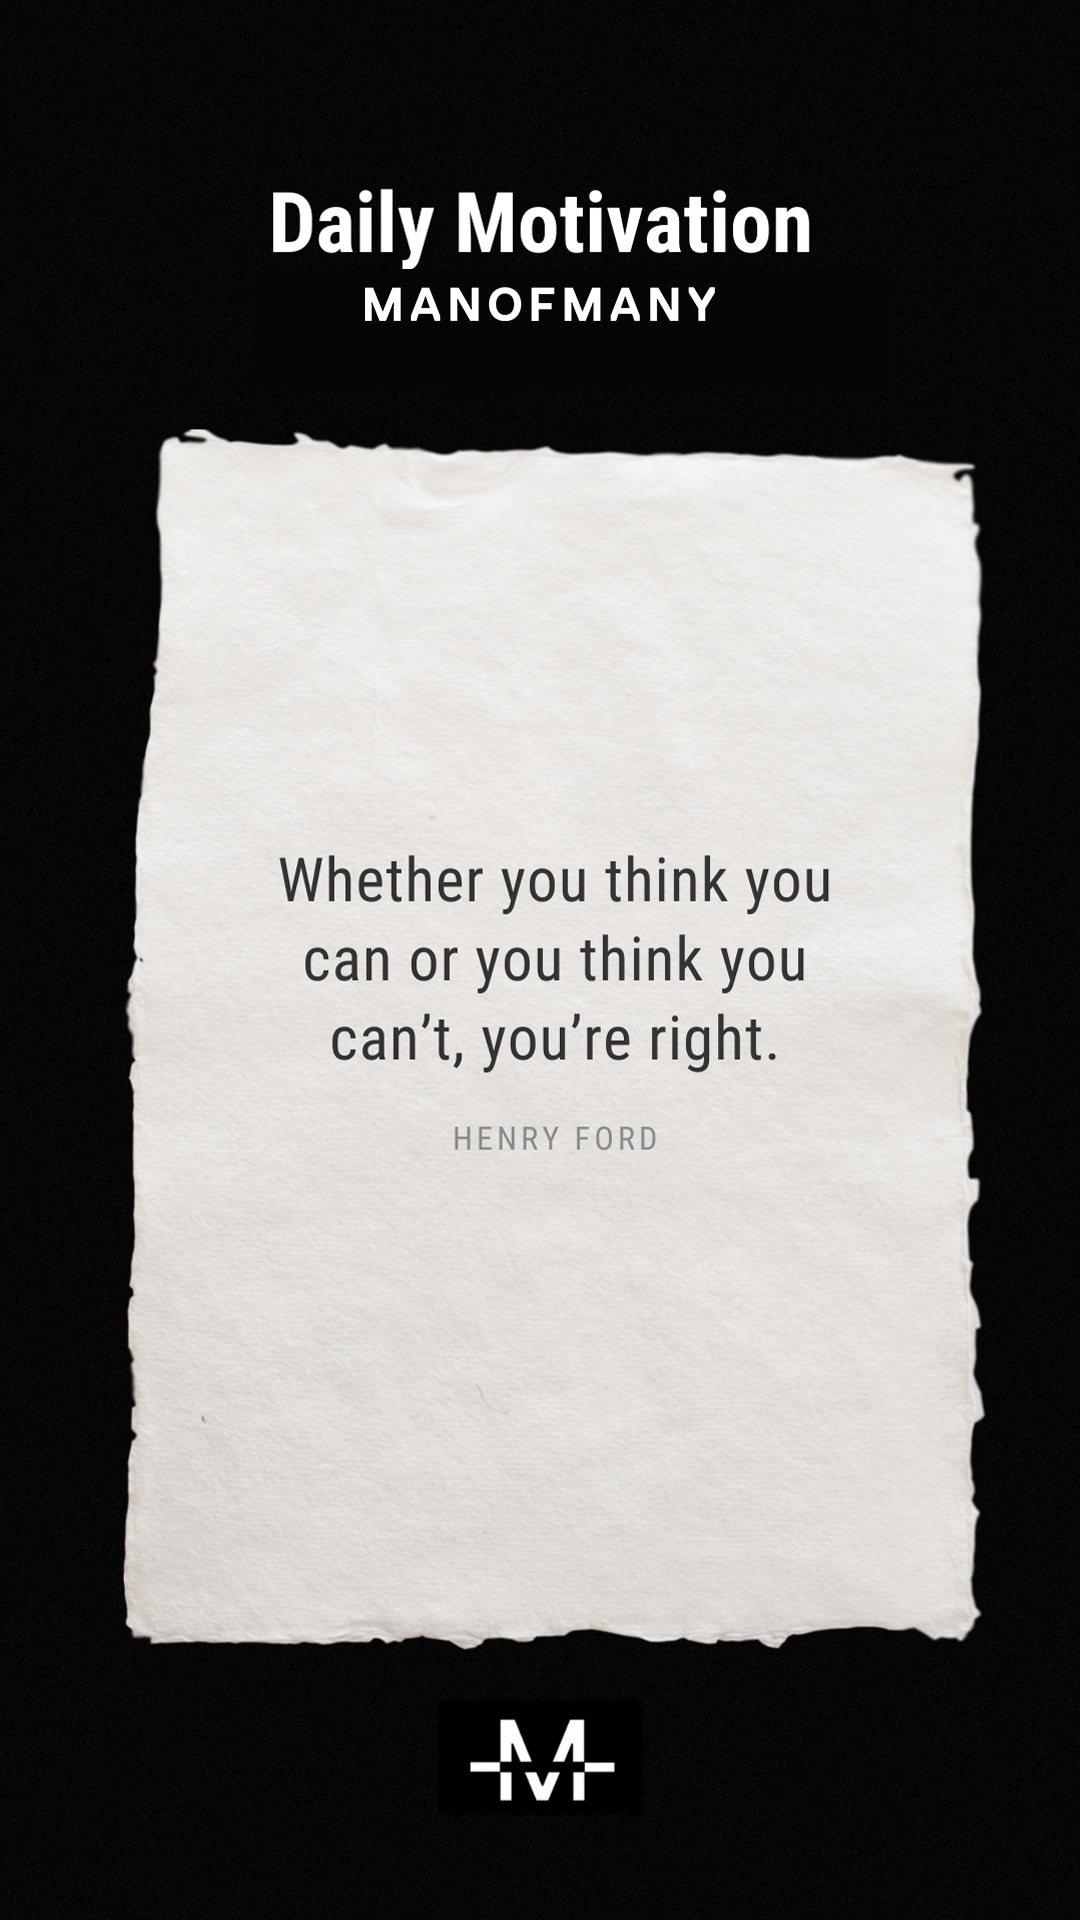 Whether you think you can or you think you can't, you're right. –Henry Ford quote